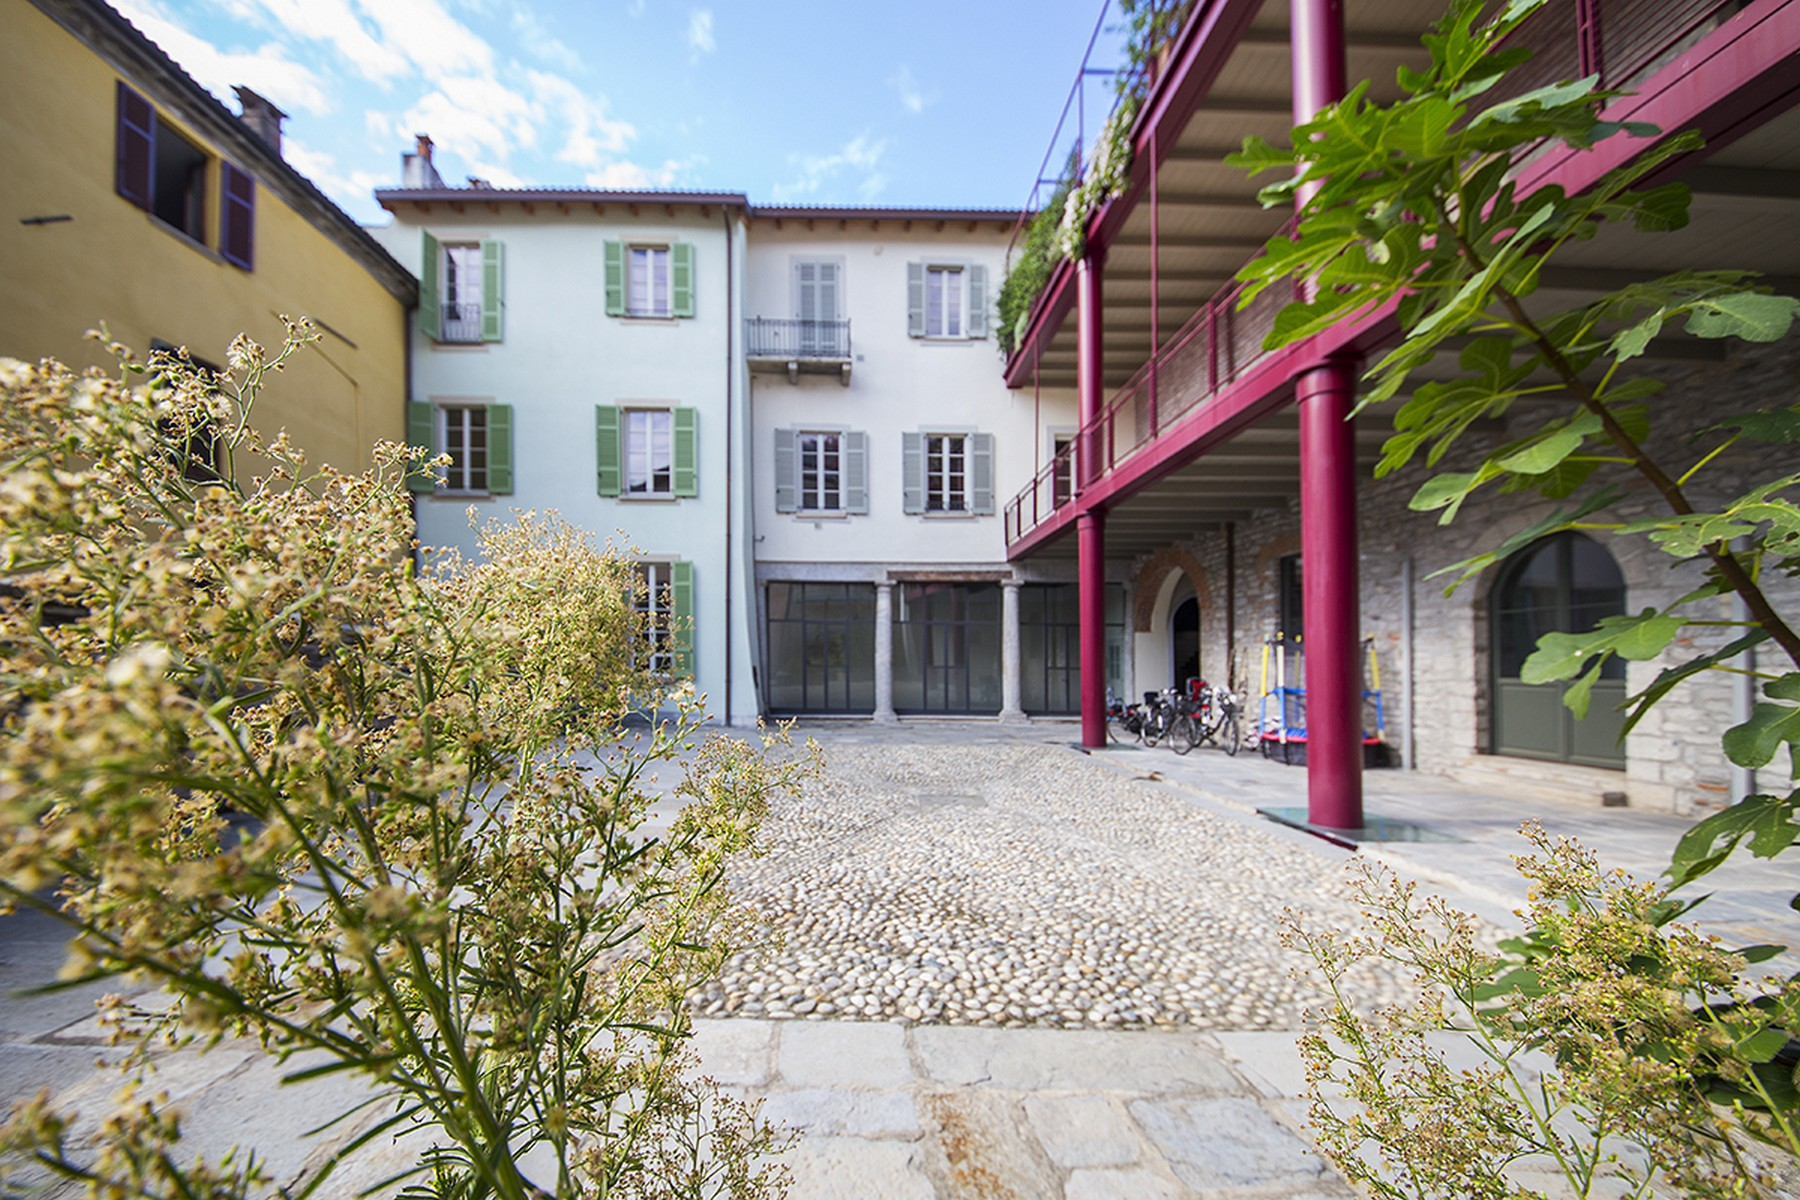 Apartamento por un Alquiler en Newly built apartment in the historic center of Como Via Cinque Giornate Como, Como 22100 Italia